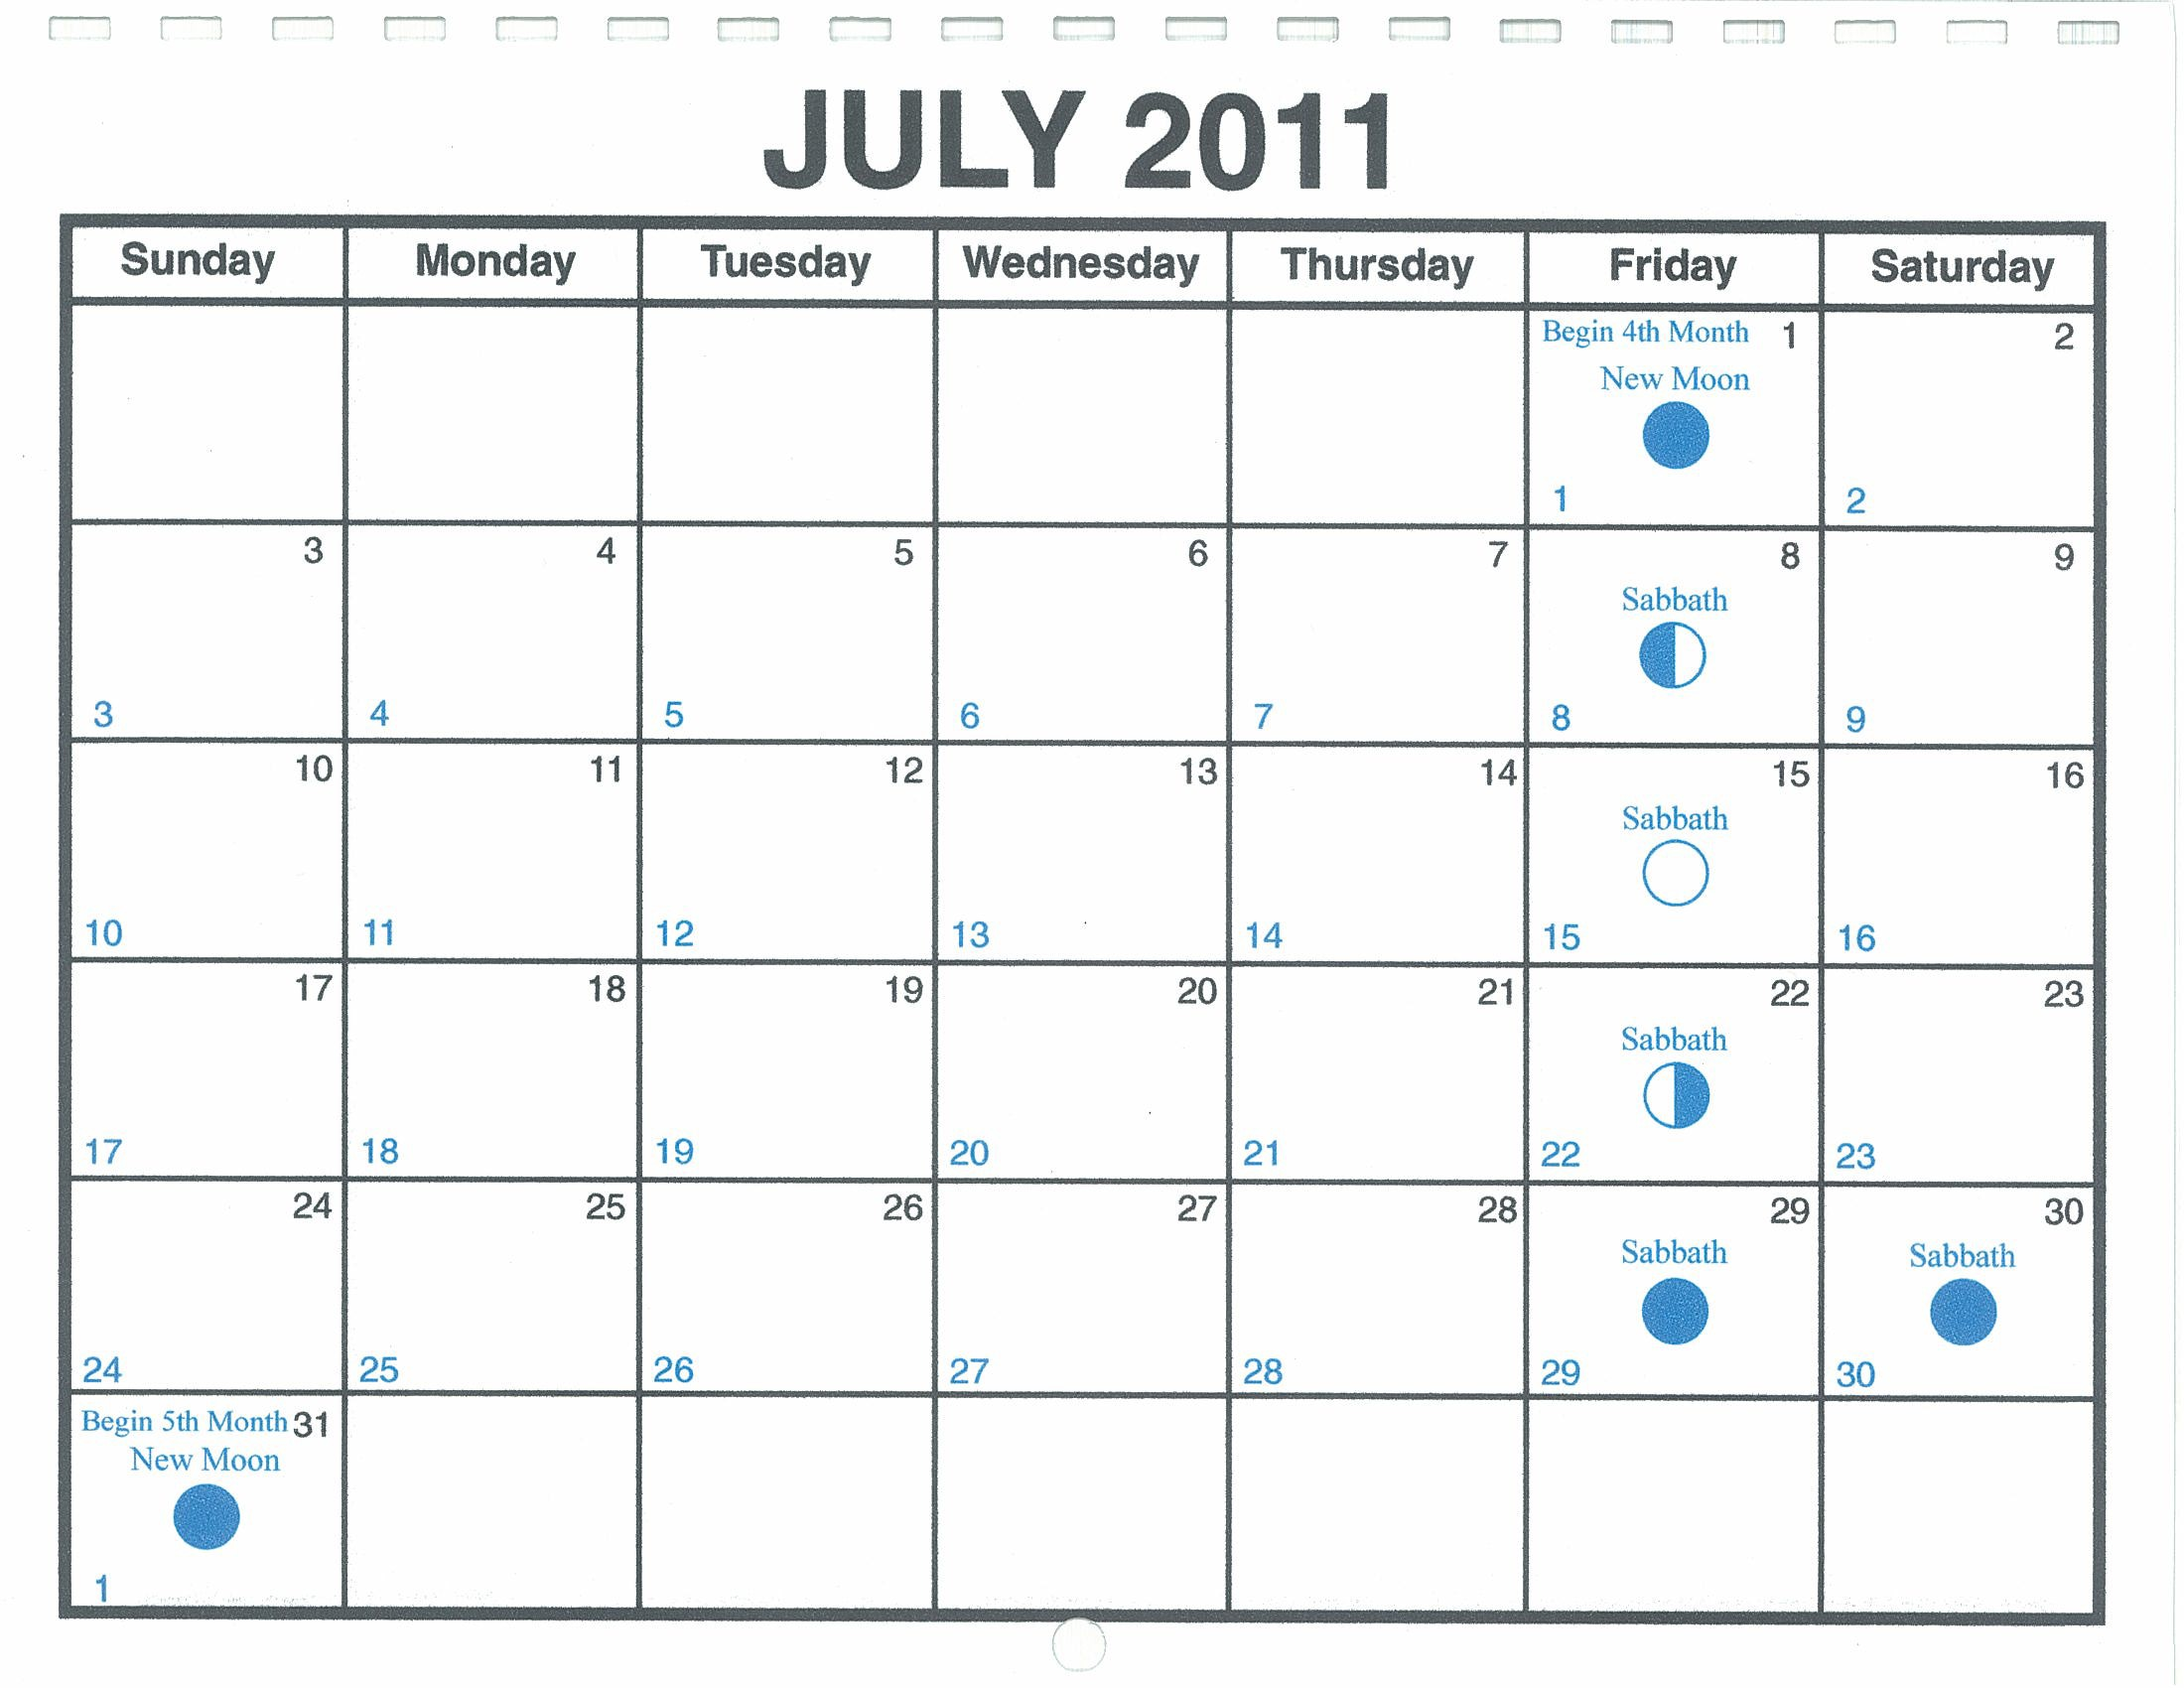 July 2011 Lunar Calendar One Yahweh